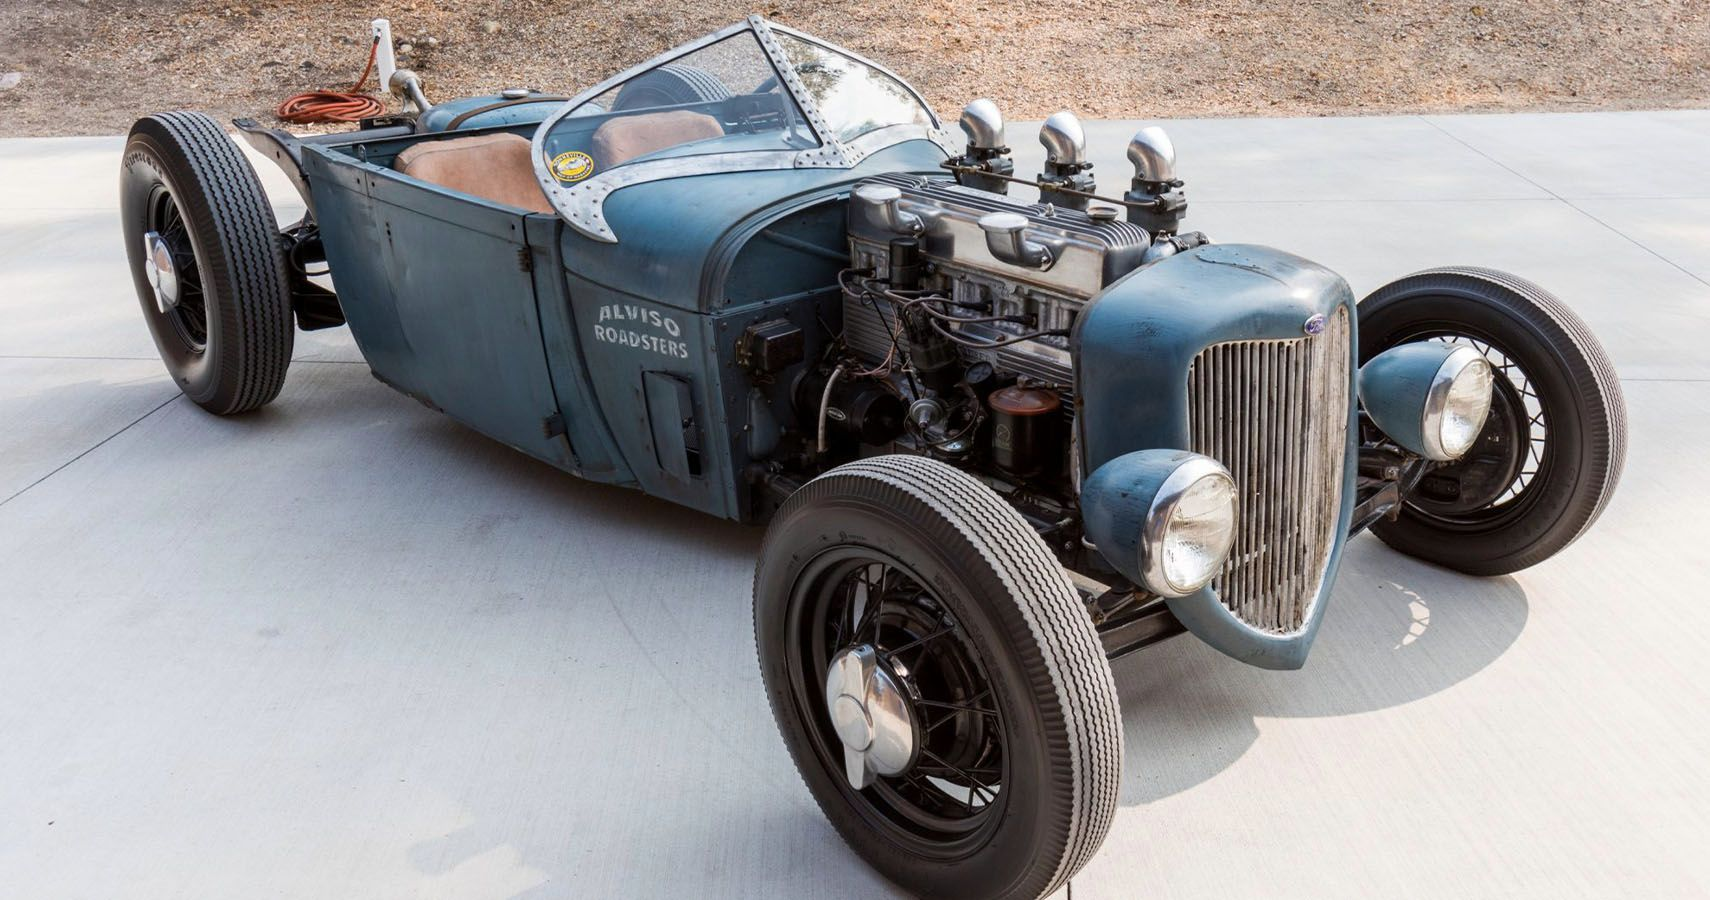 Check Out This Award-Winning Ford Model A Hot Rod